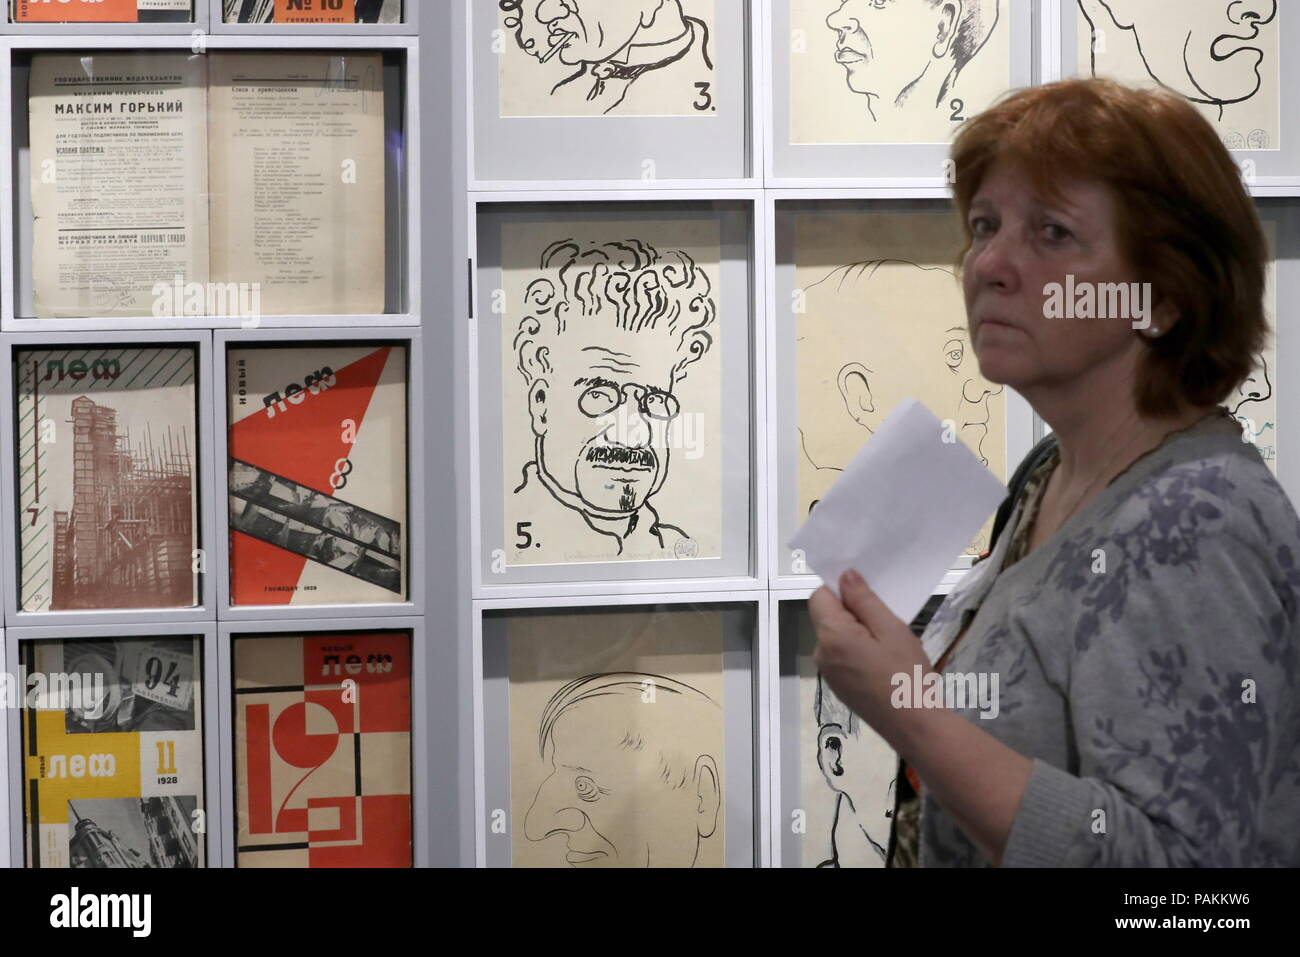 Moscow, Russia. 24th July, 2018. MOSCOW, RUSSIA - JULY 24, 2018: A visitor views early 1920s mocking portraits of LEF [Left Front of Arts] members on display at an exhibition titled 'Vladimir Mayakovsky - There and Over Here' and held at Moscow's Vladimir Dahl Russian State Literary Museum to mark Russian poet Vladimir Mayakovsky's 125th birthday. Sergei Savostyanov/TASS Credit: ITAR-TASS News Agency/Alamy Live News - Stock Image